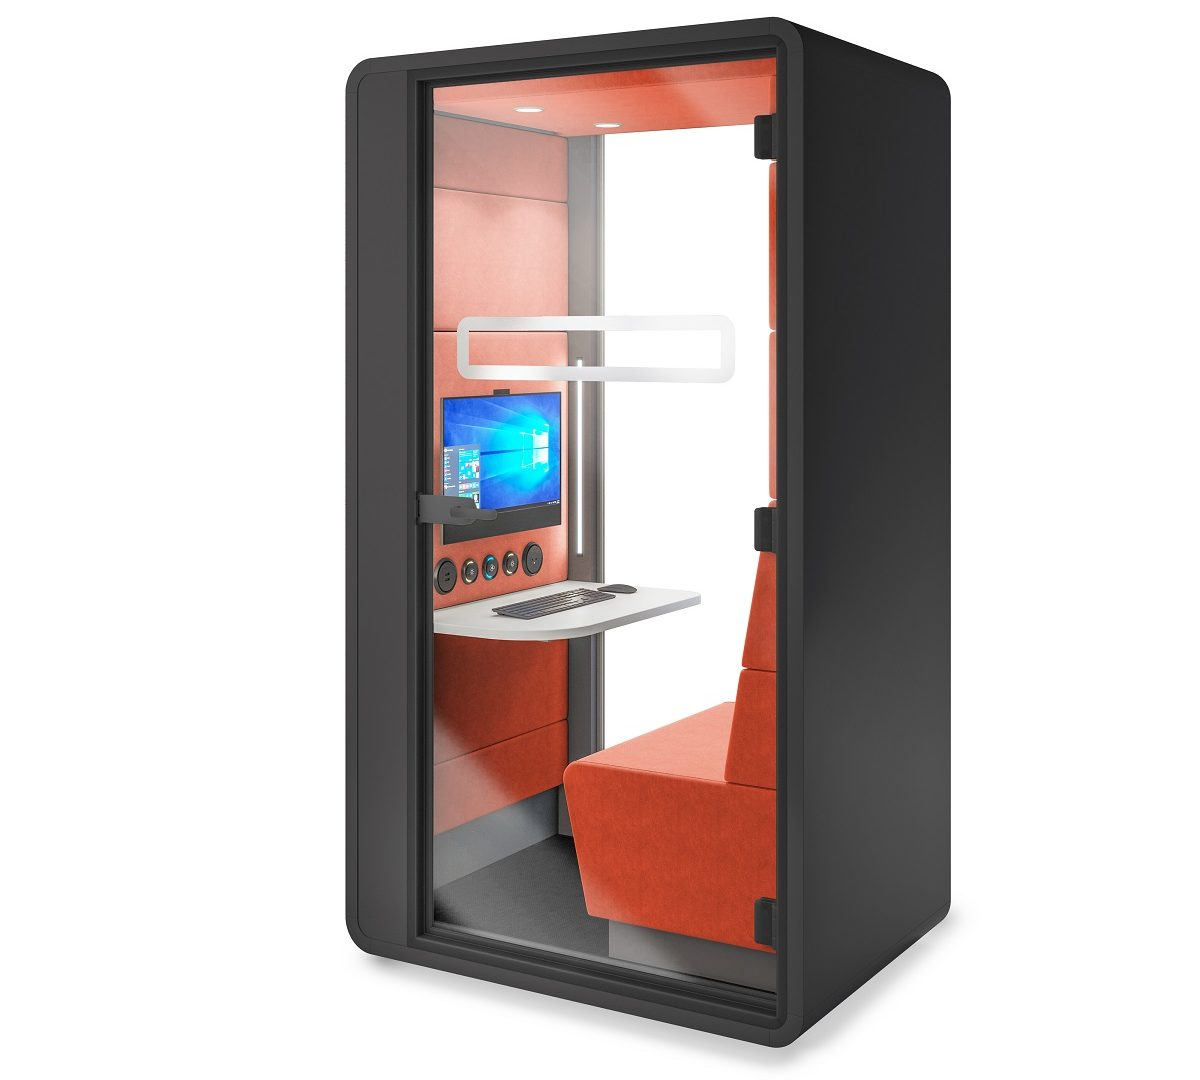 No meeting room for video conferencing? HushHybrid is a flexible fix. An all-in-one mobile office pod for video calls.